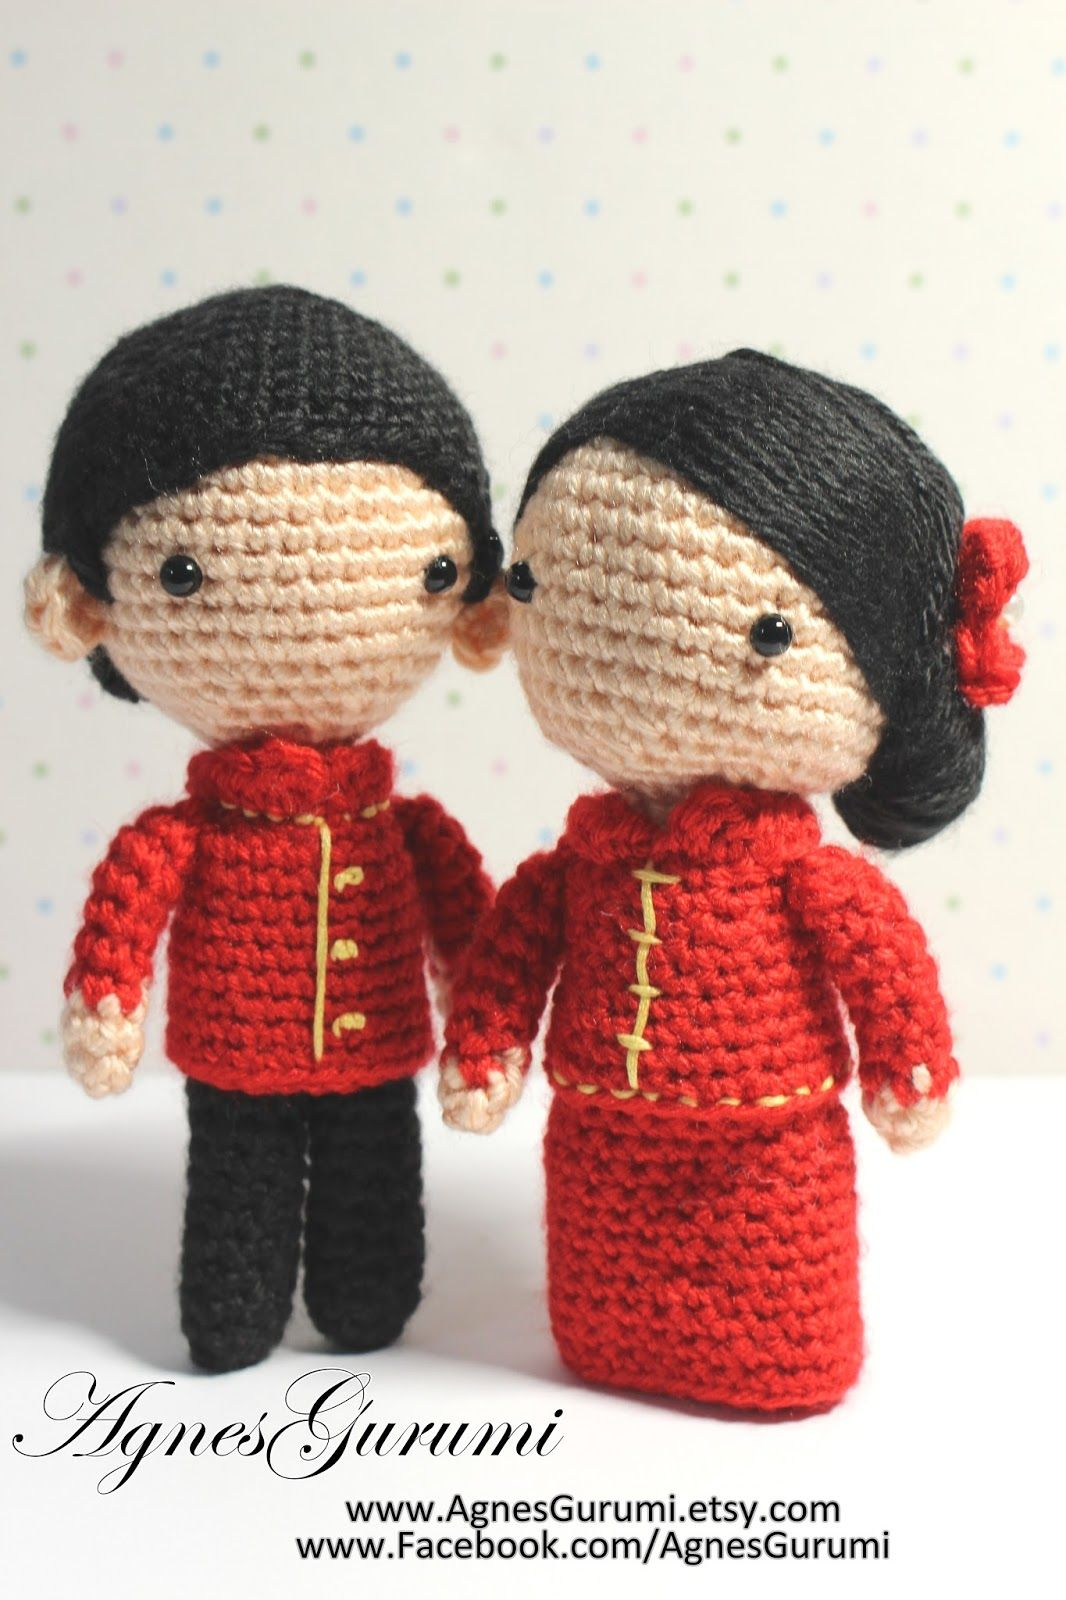 Agnes Gurumi: Wedding Couple in Traditional Chinese Costume ...